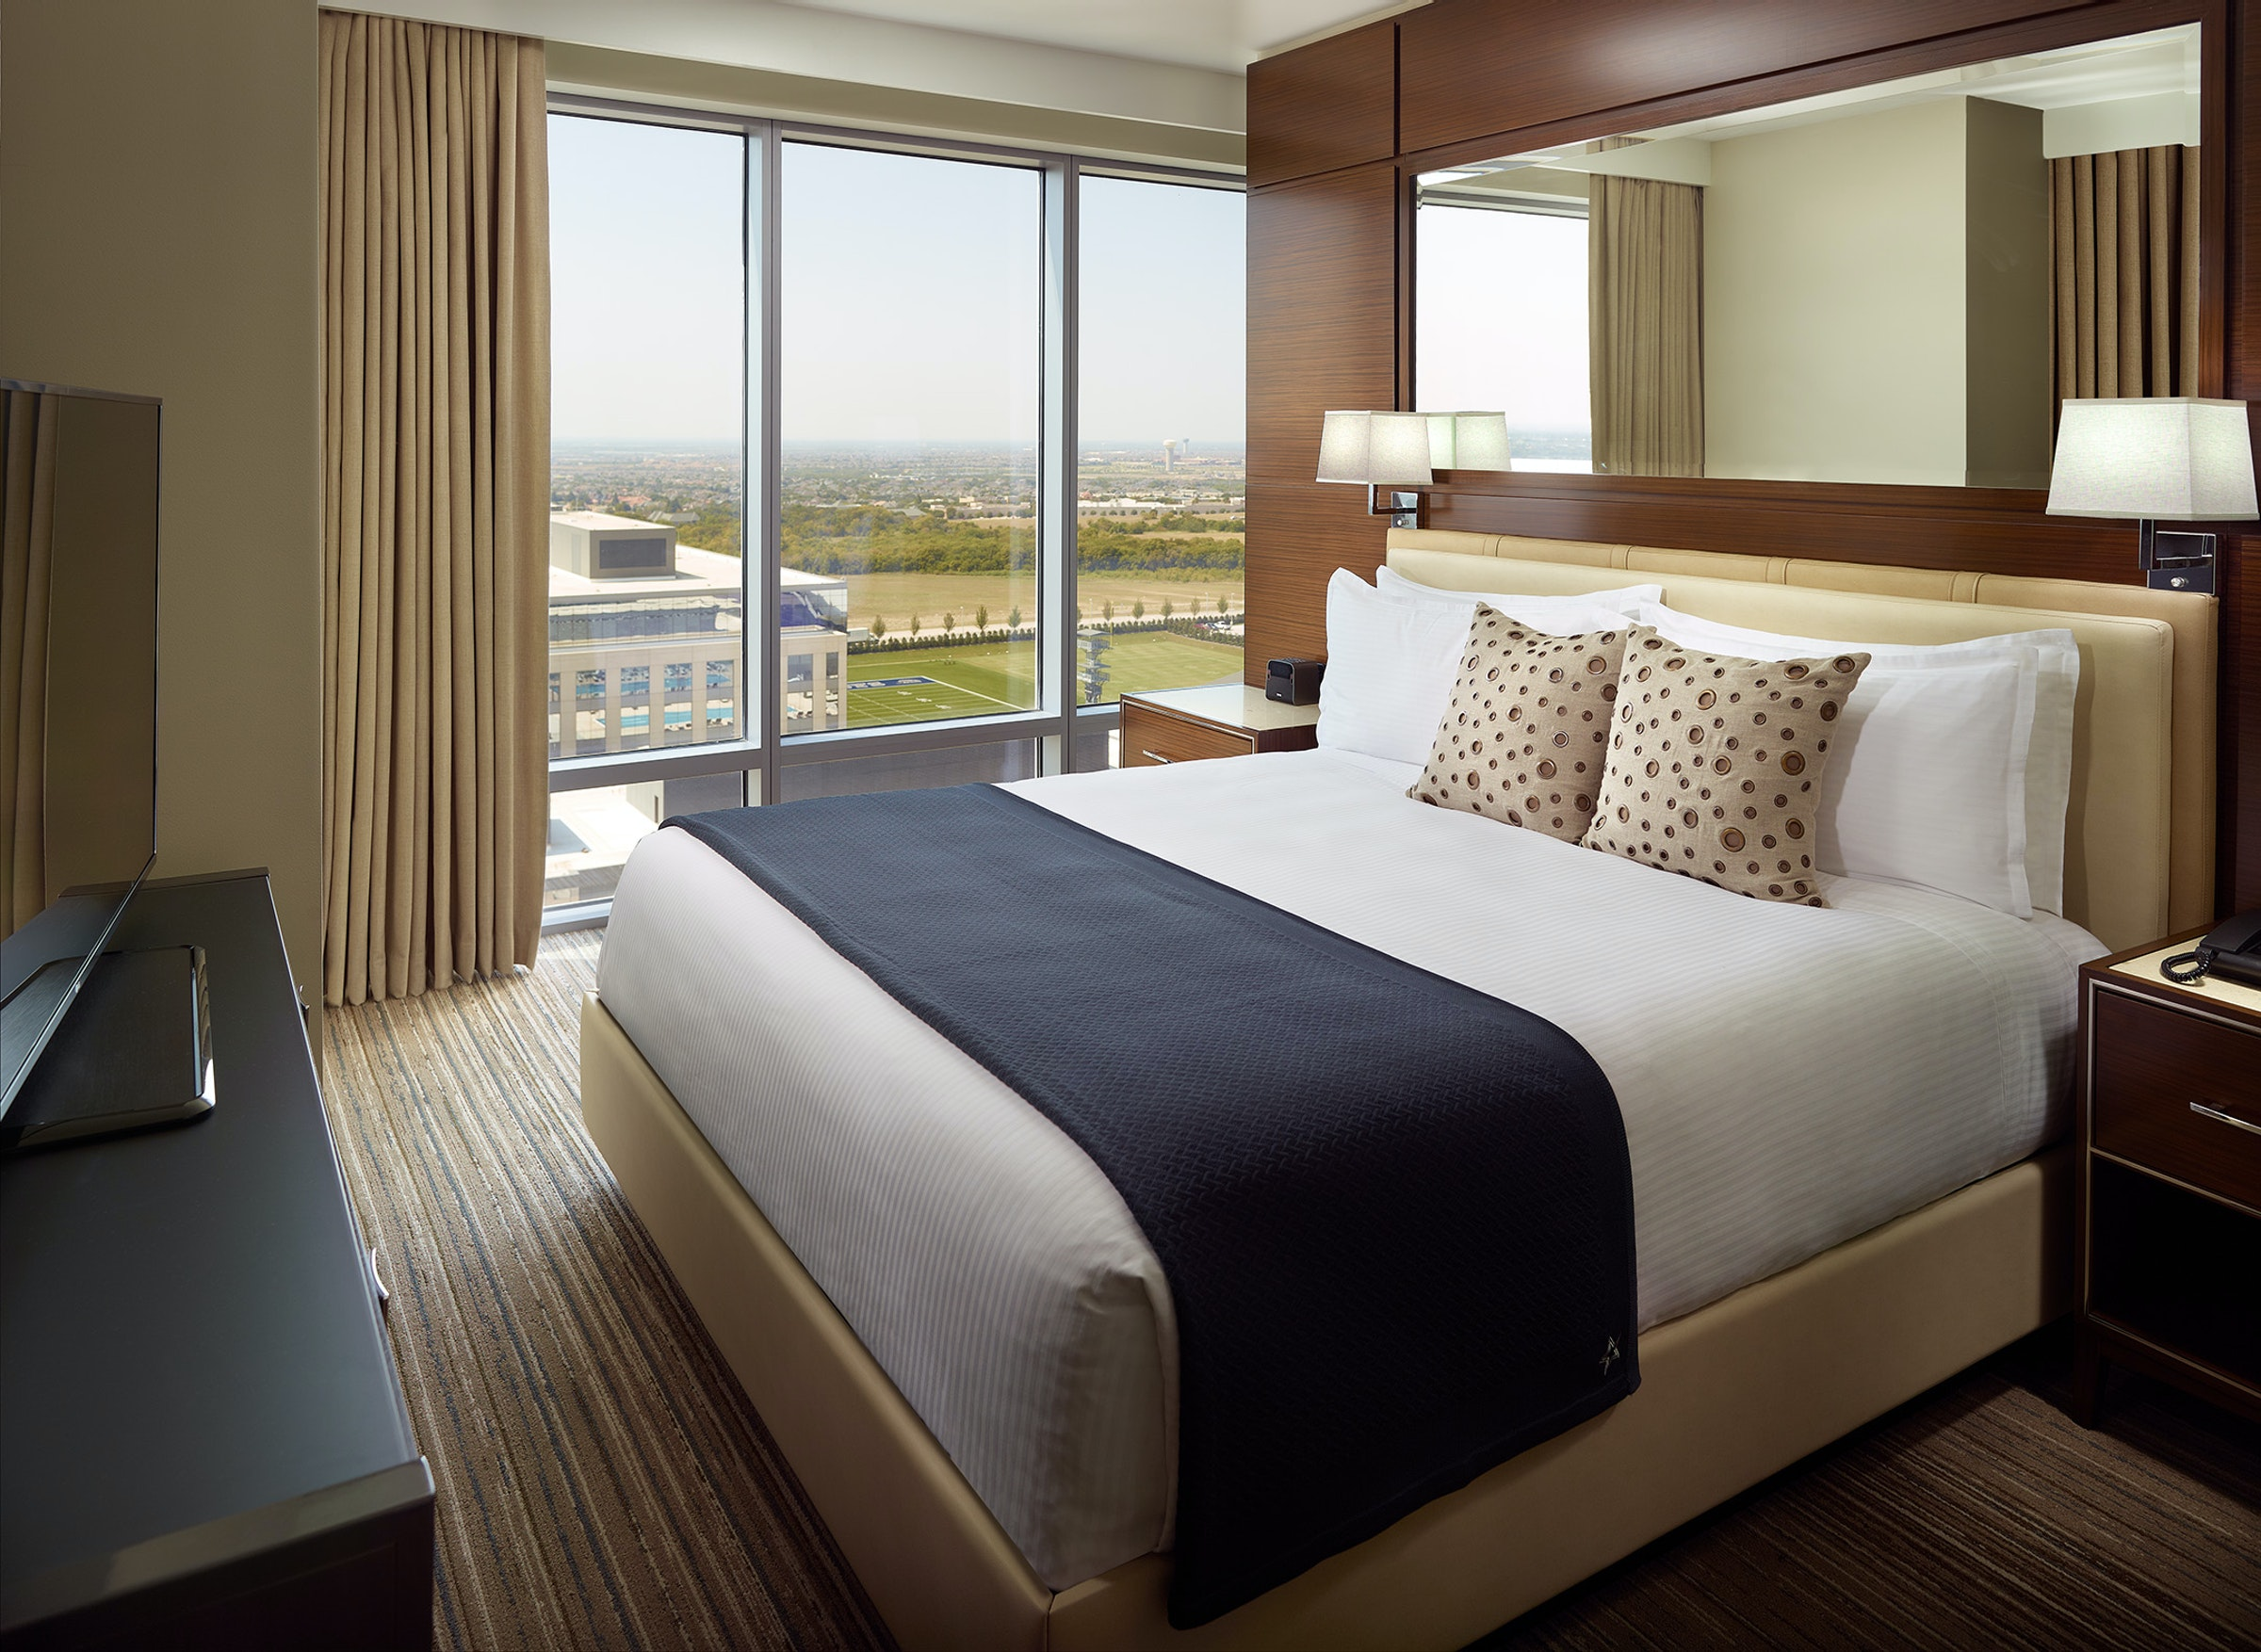 Omni Frisco Hotel in Beyond Dallas